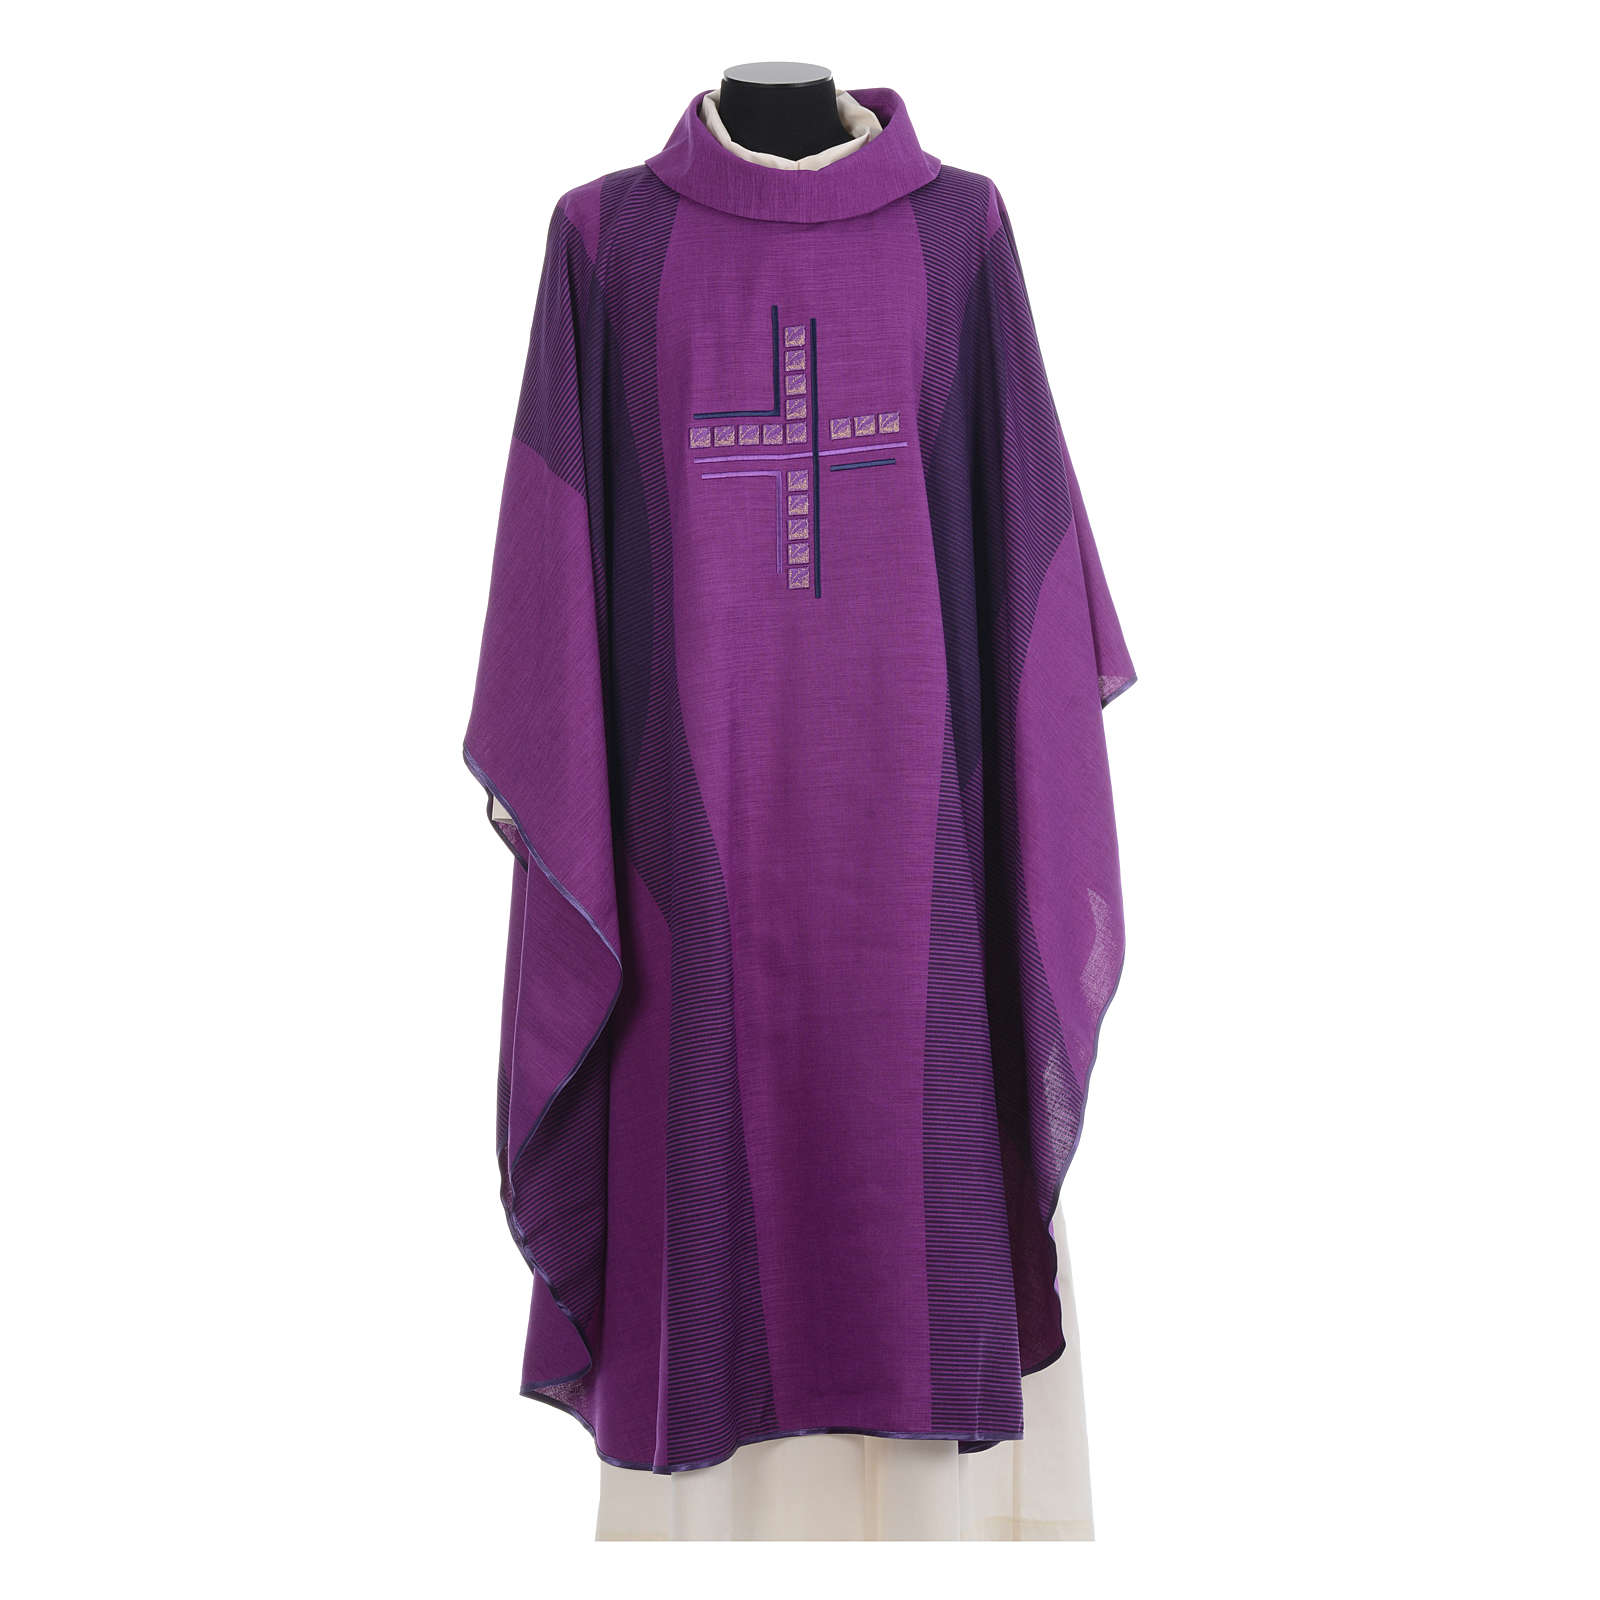 Chasuble embroidered with stylized cross 4